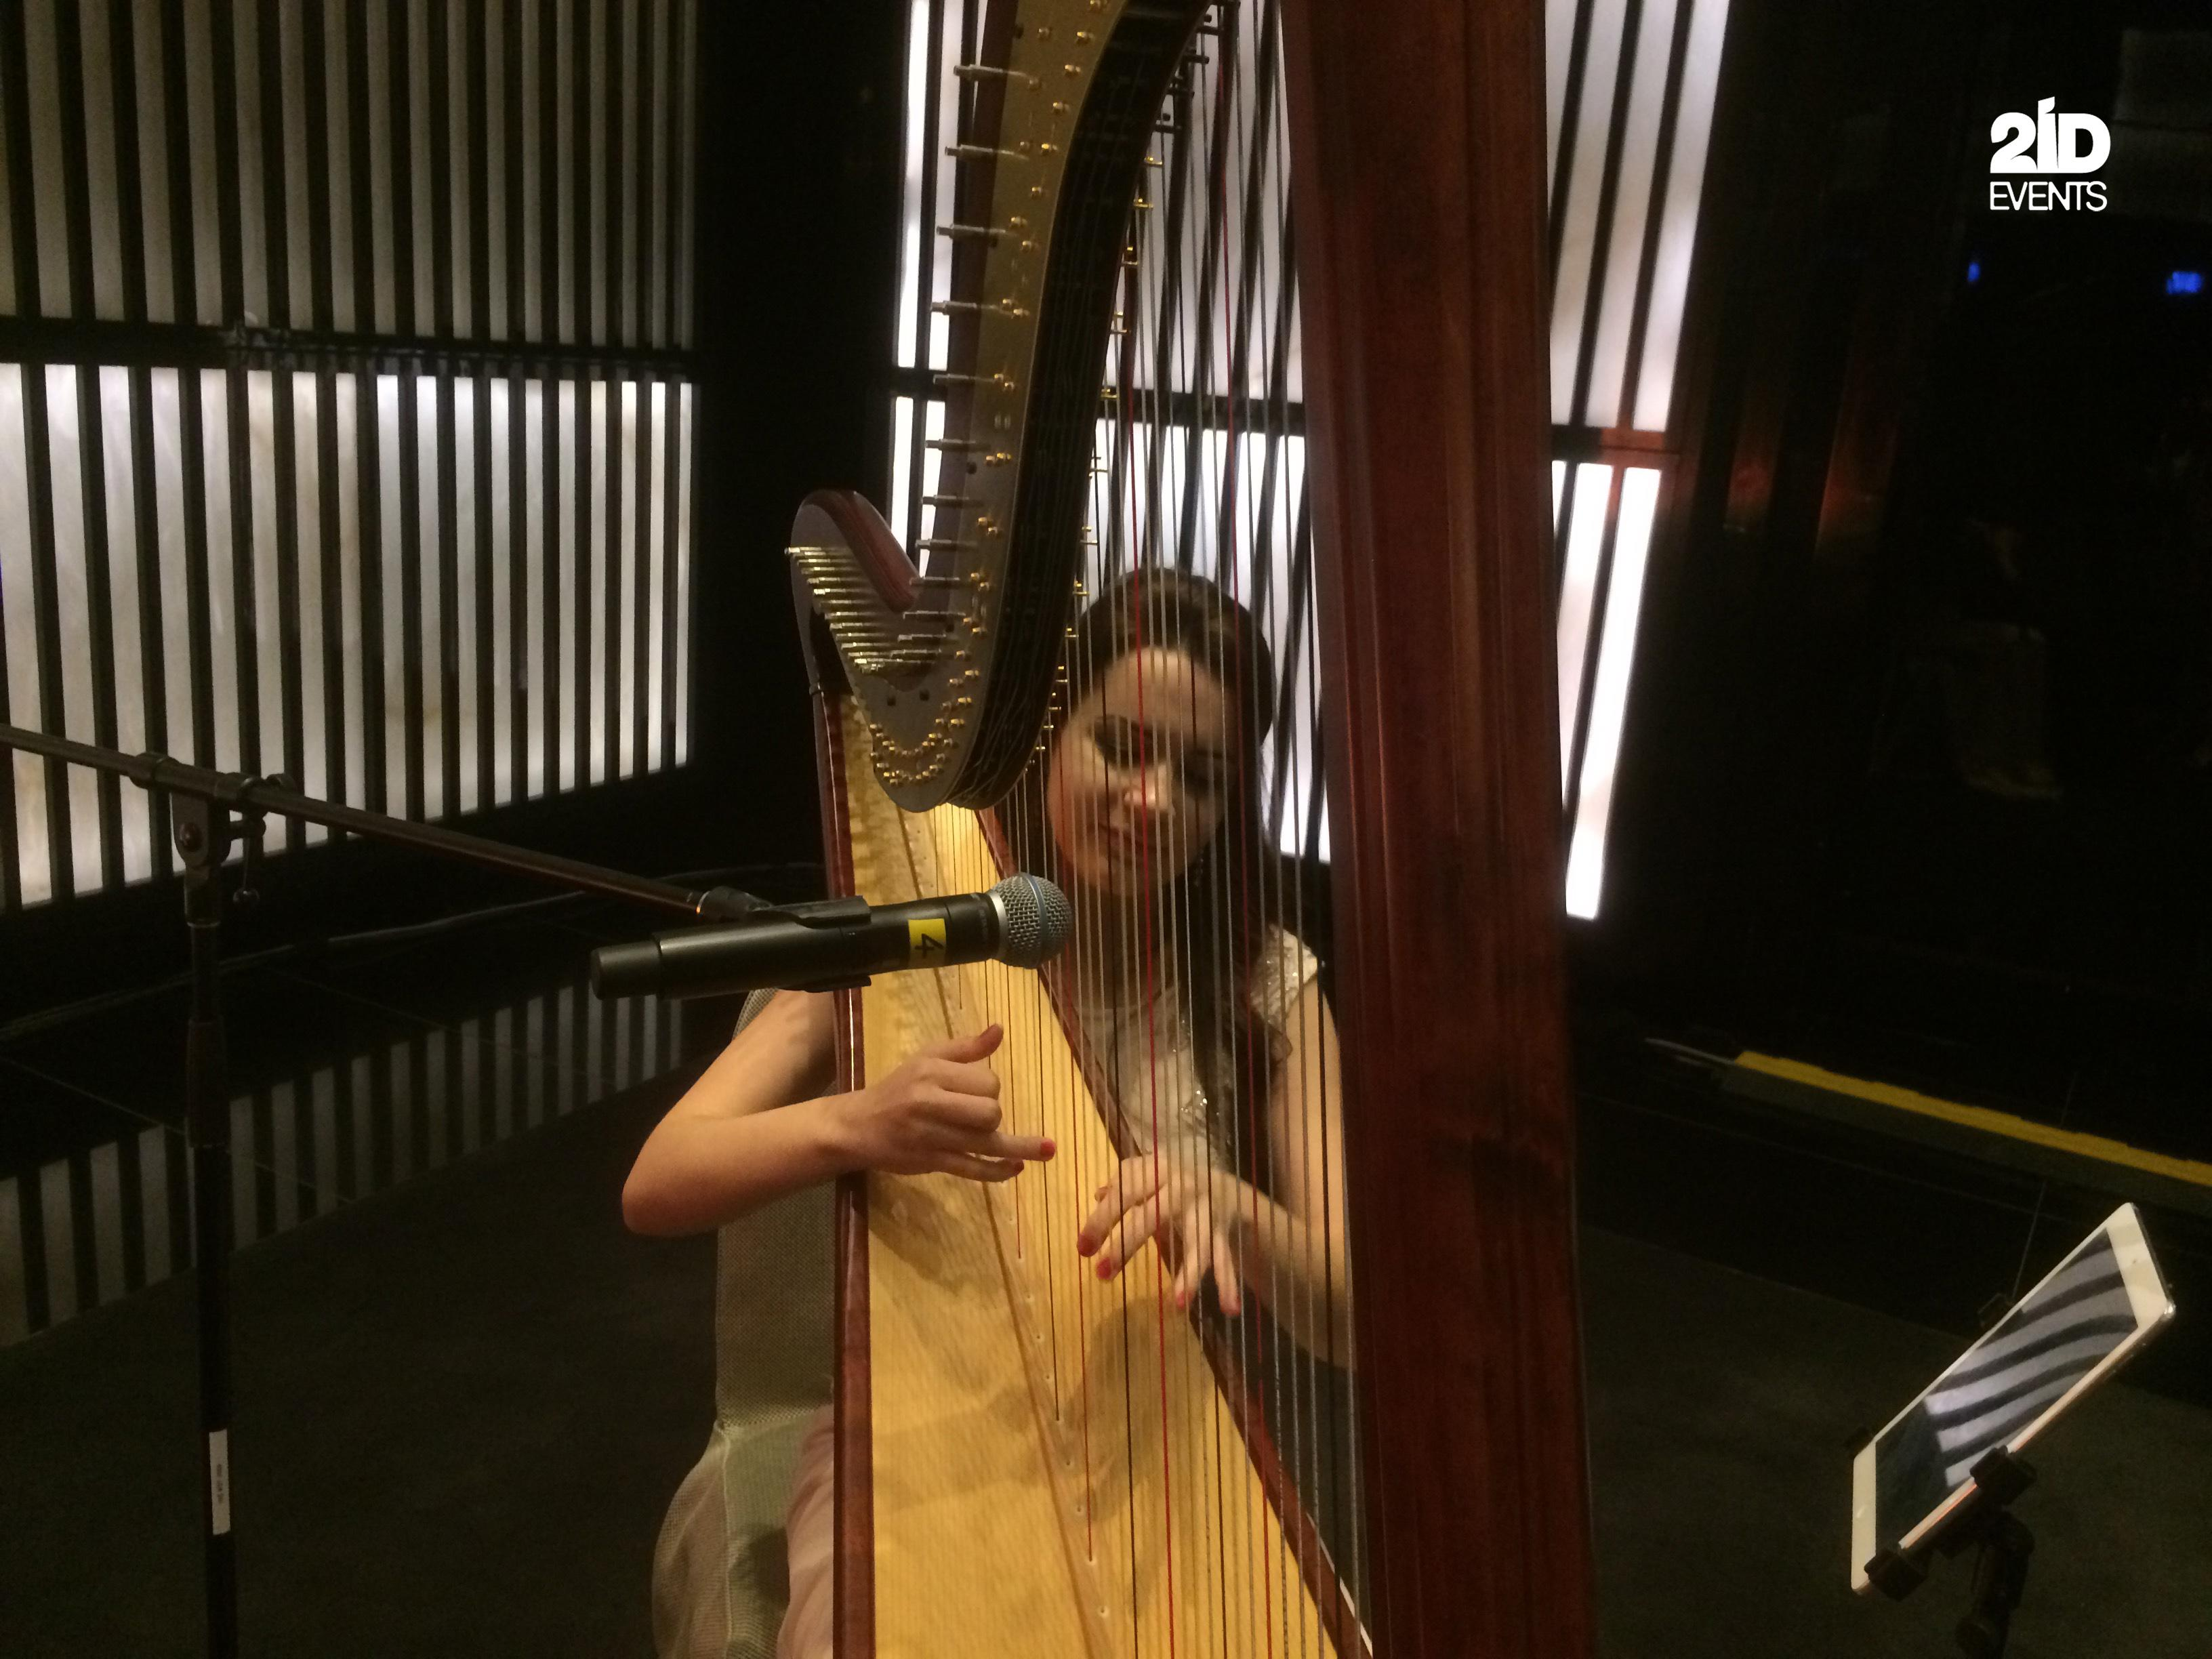 HARP PLAYER FOR CORPORATE EVENT